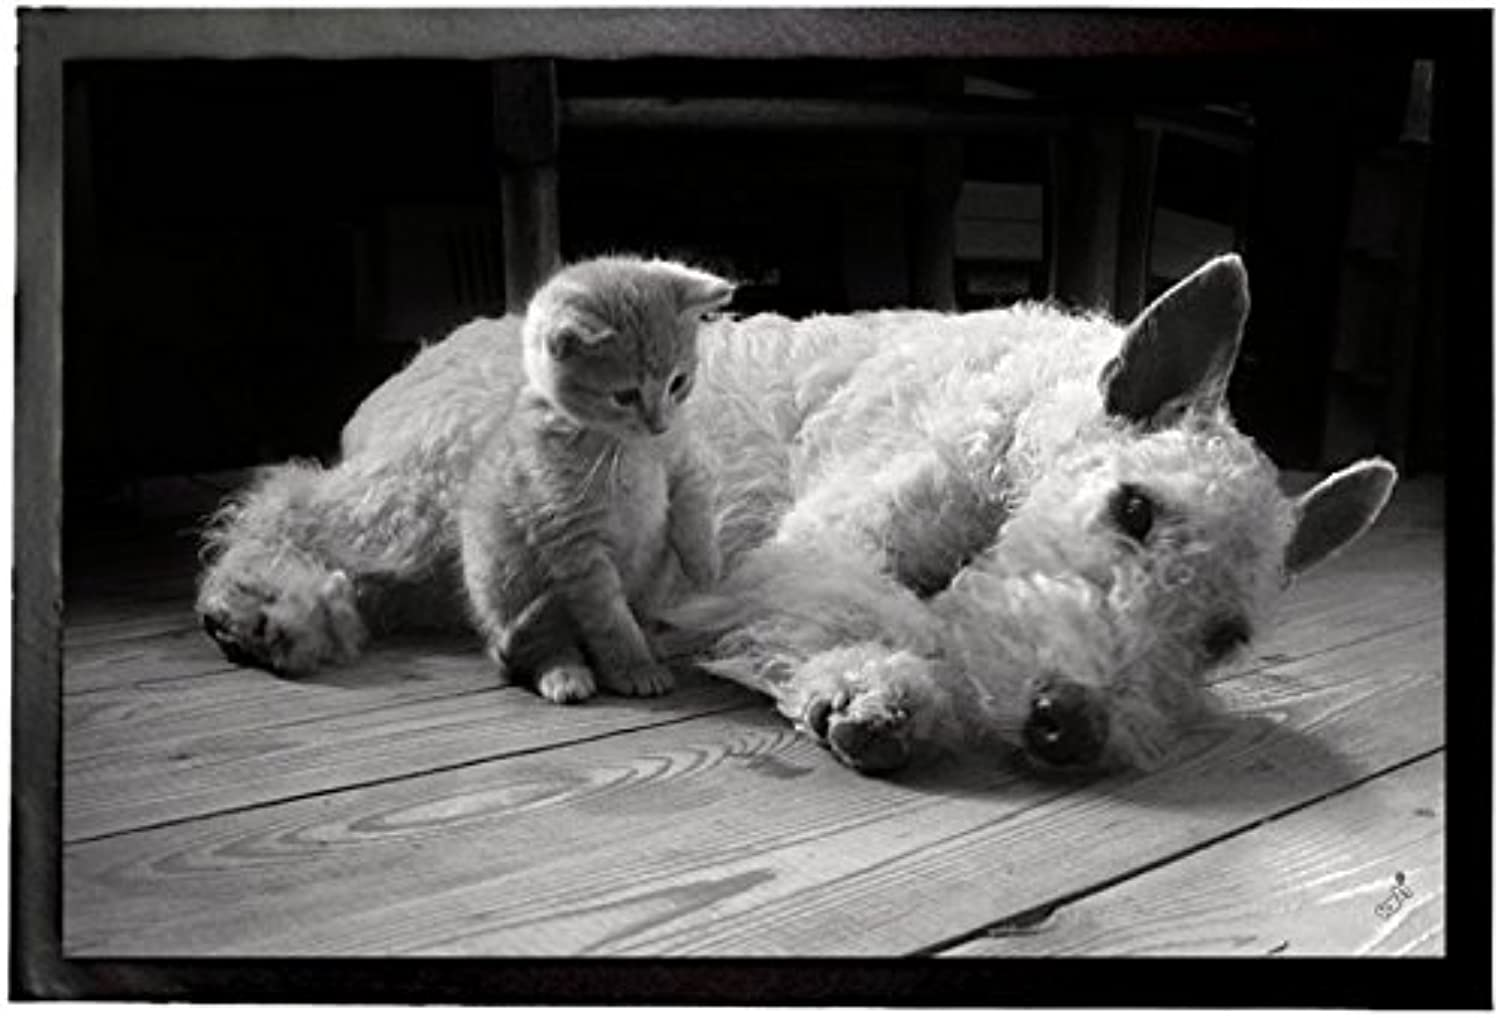 Cats and Dogs Door Mat Floor Mat - You are My Best Friend, Fox Terrier and Kitten (24 x 16 inches)